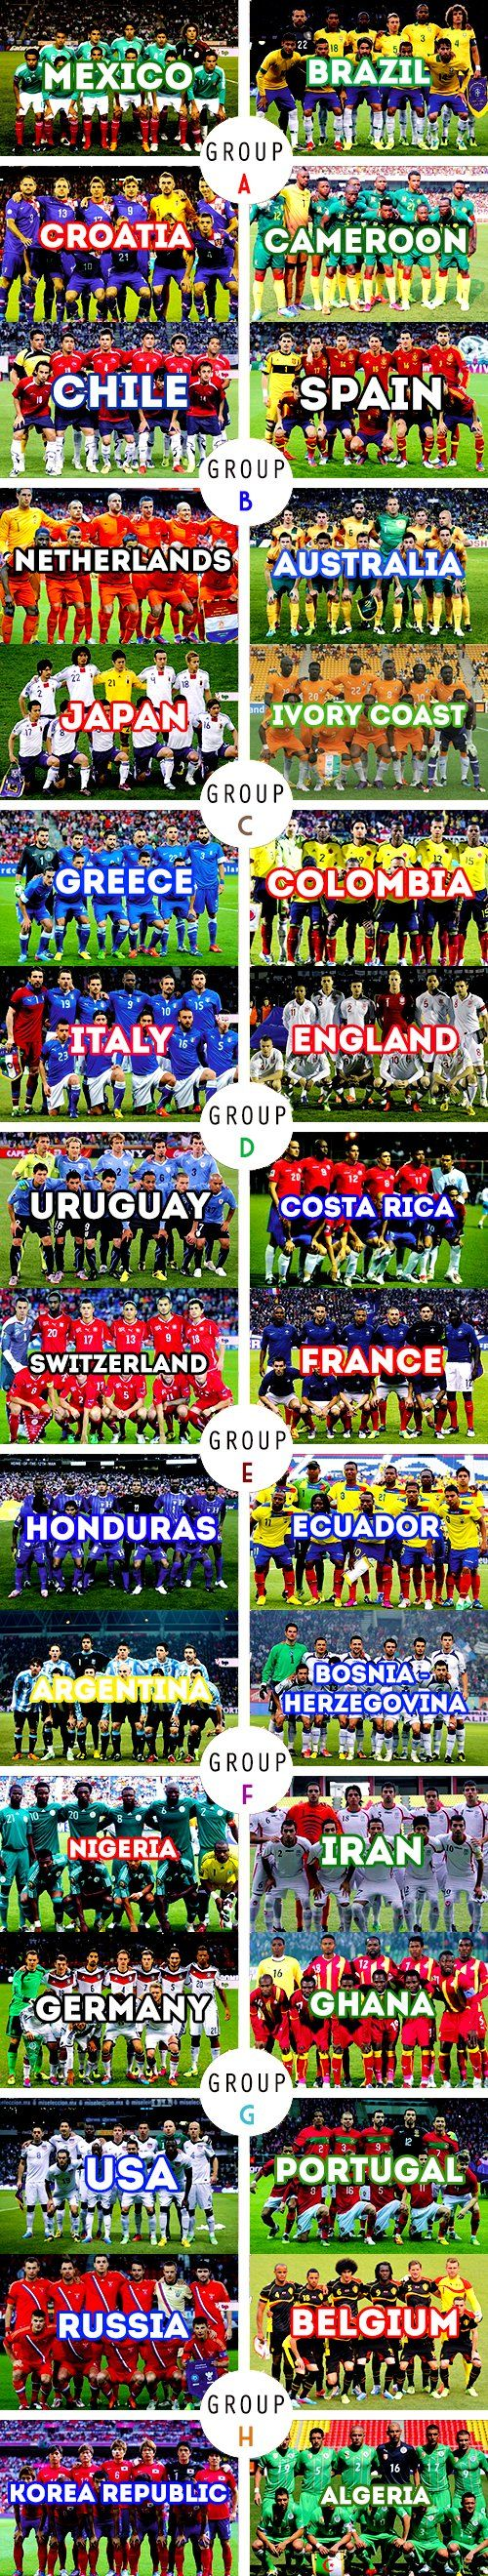 The World Cup Draw!!!!!!!! USA in a really tough group this World Cup!!!!!!!!! Fingers are Crossed! www.ThinkResidual.info